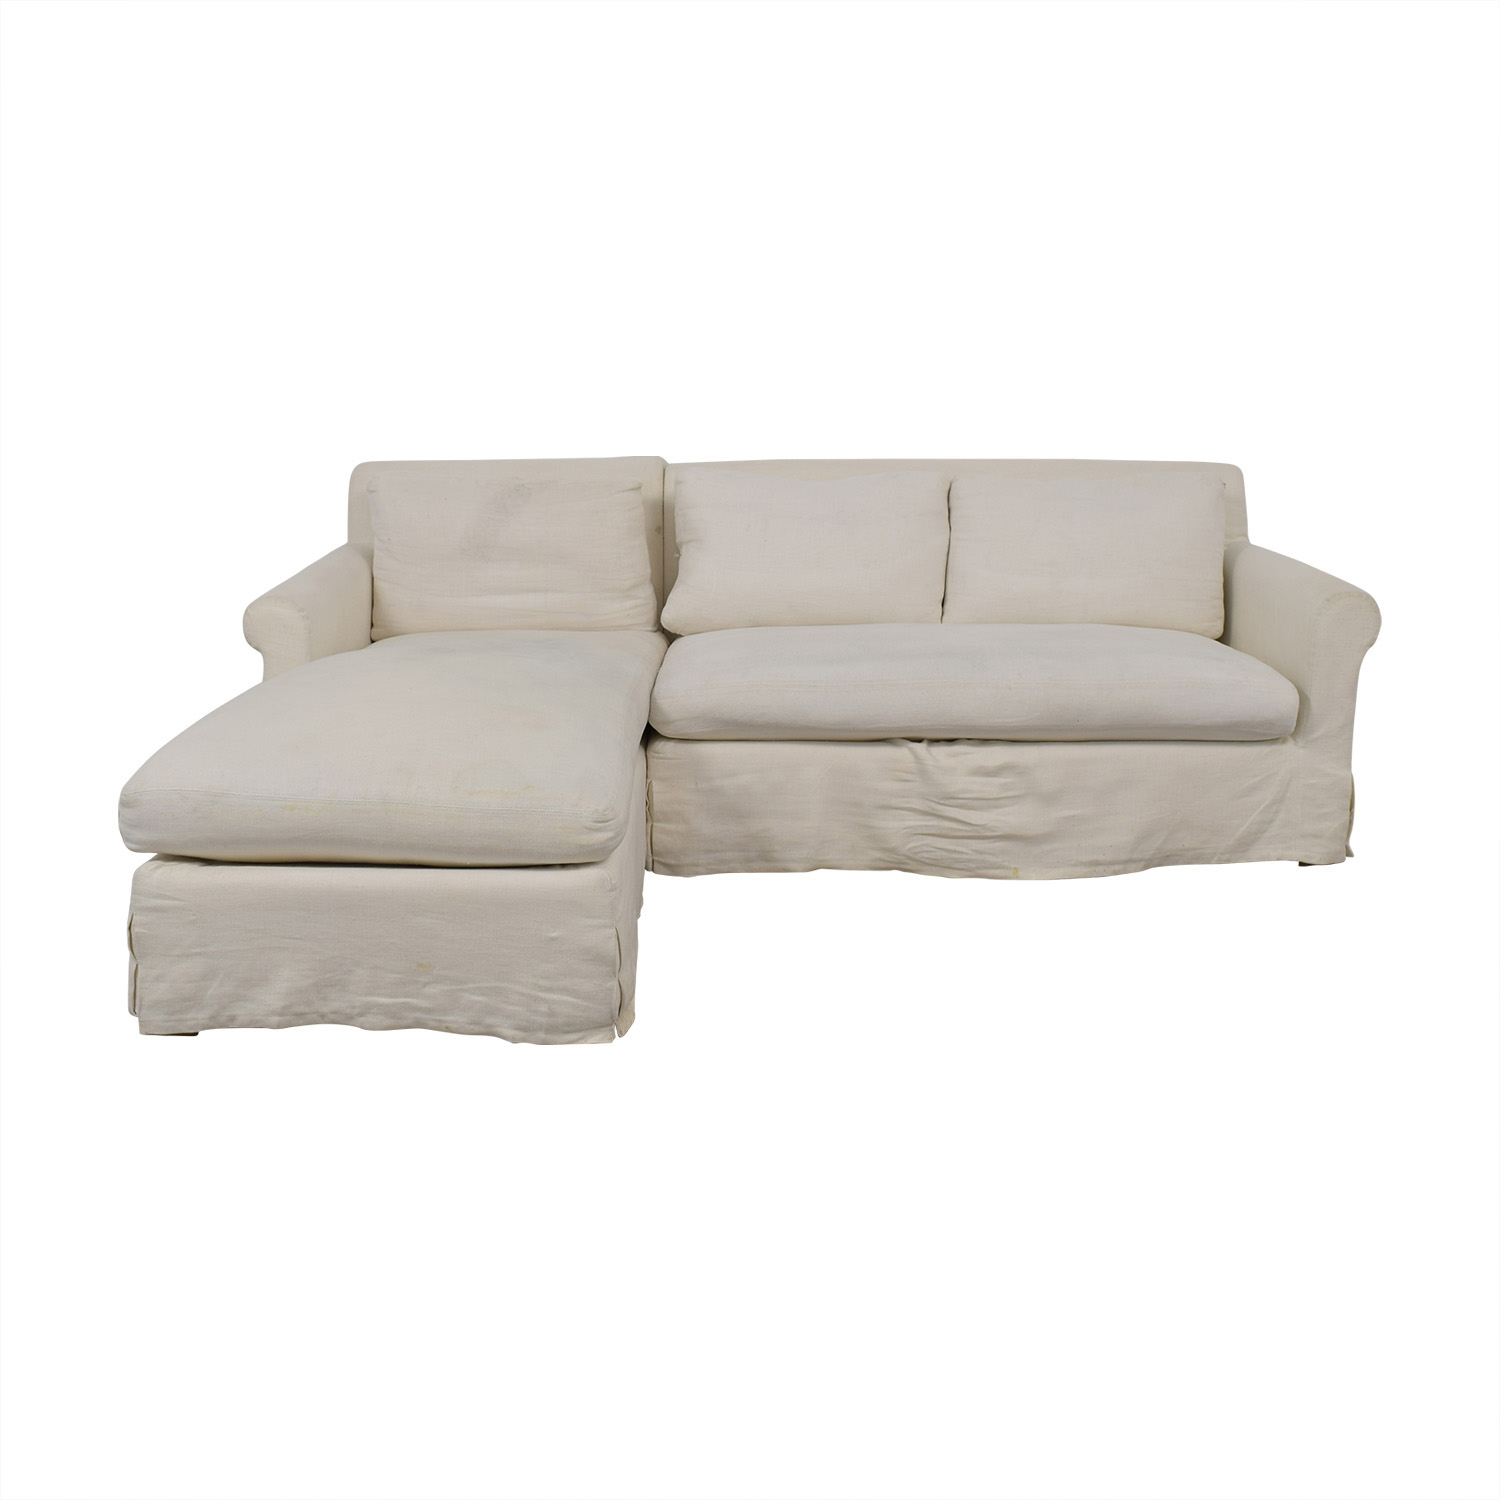 Restoration Hardware Restoration Hardware Petite Roll White Left Chaise Sectional used